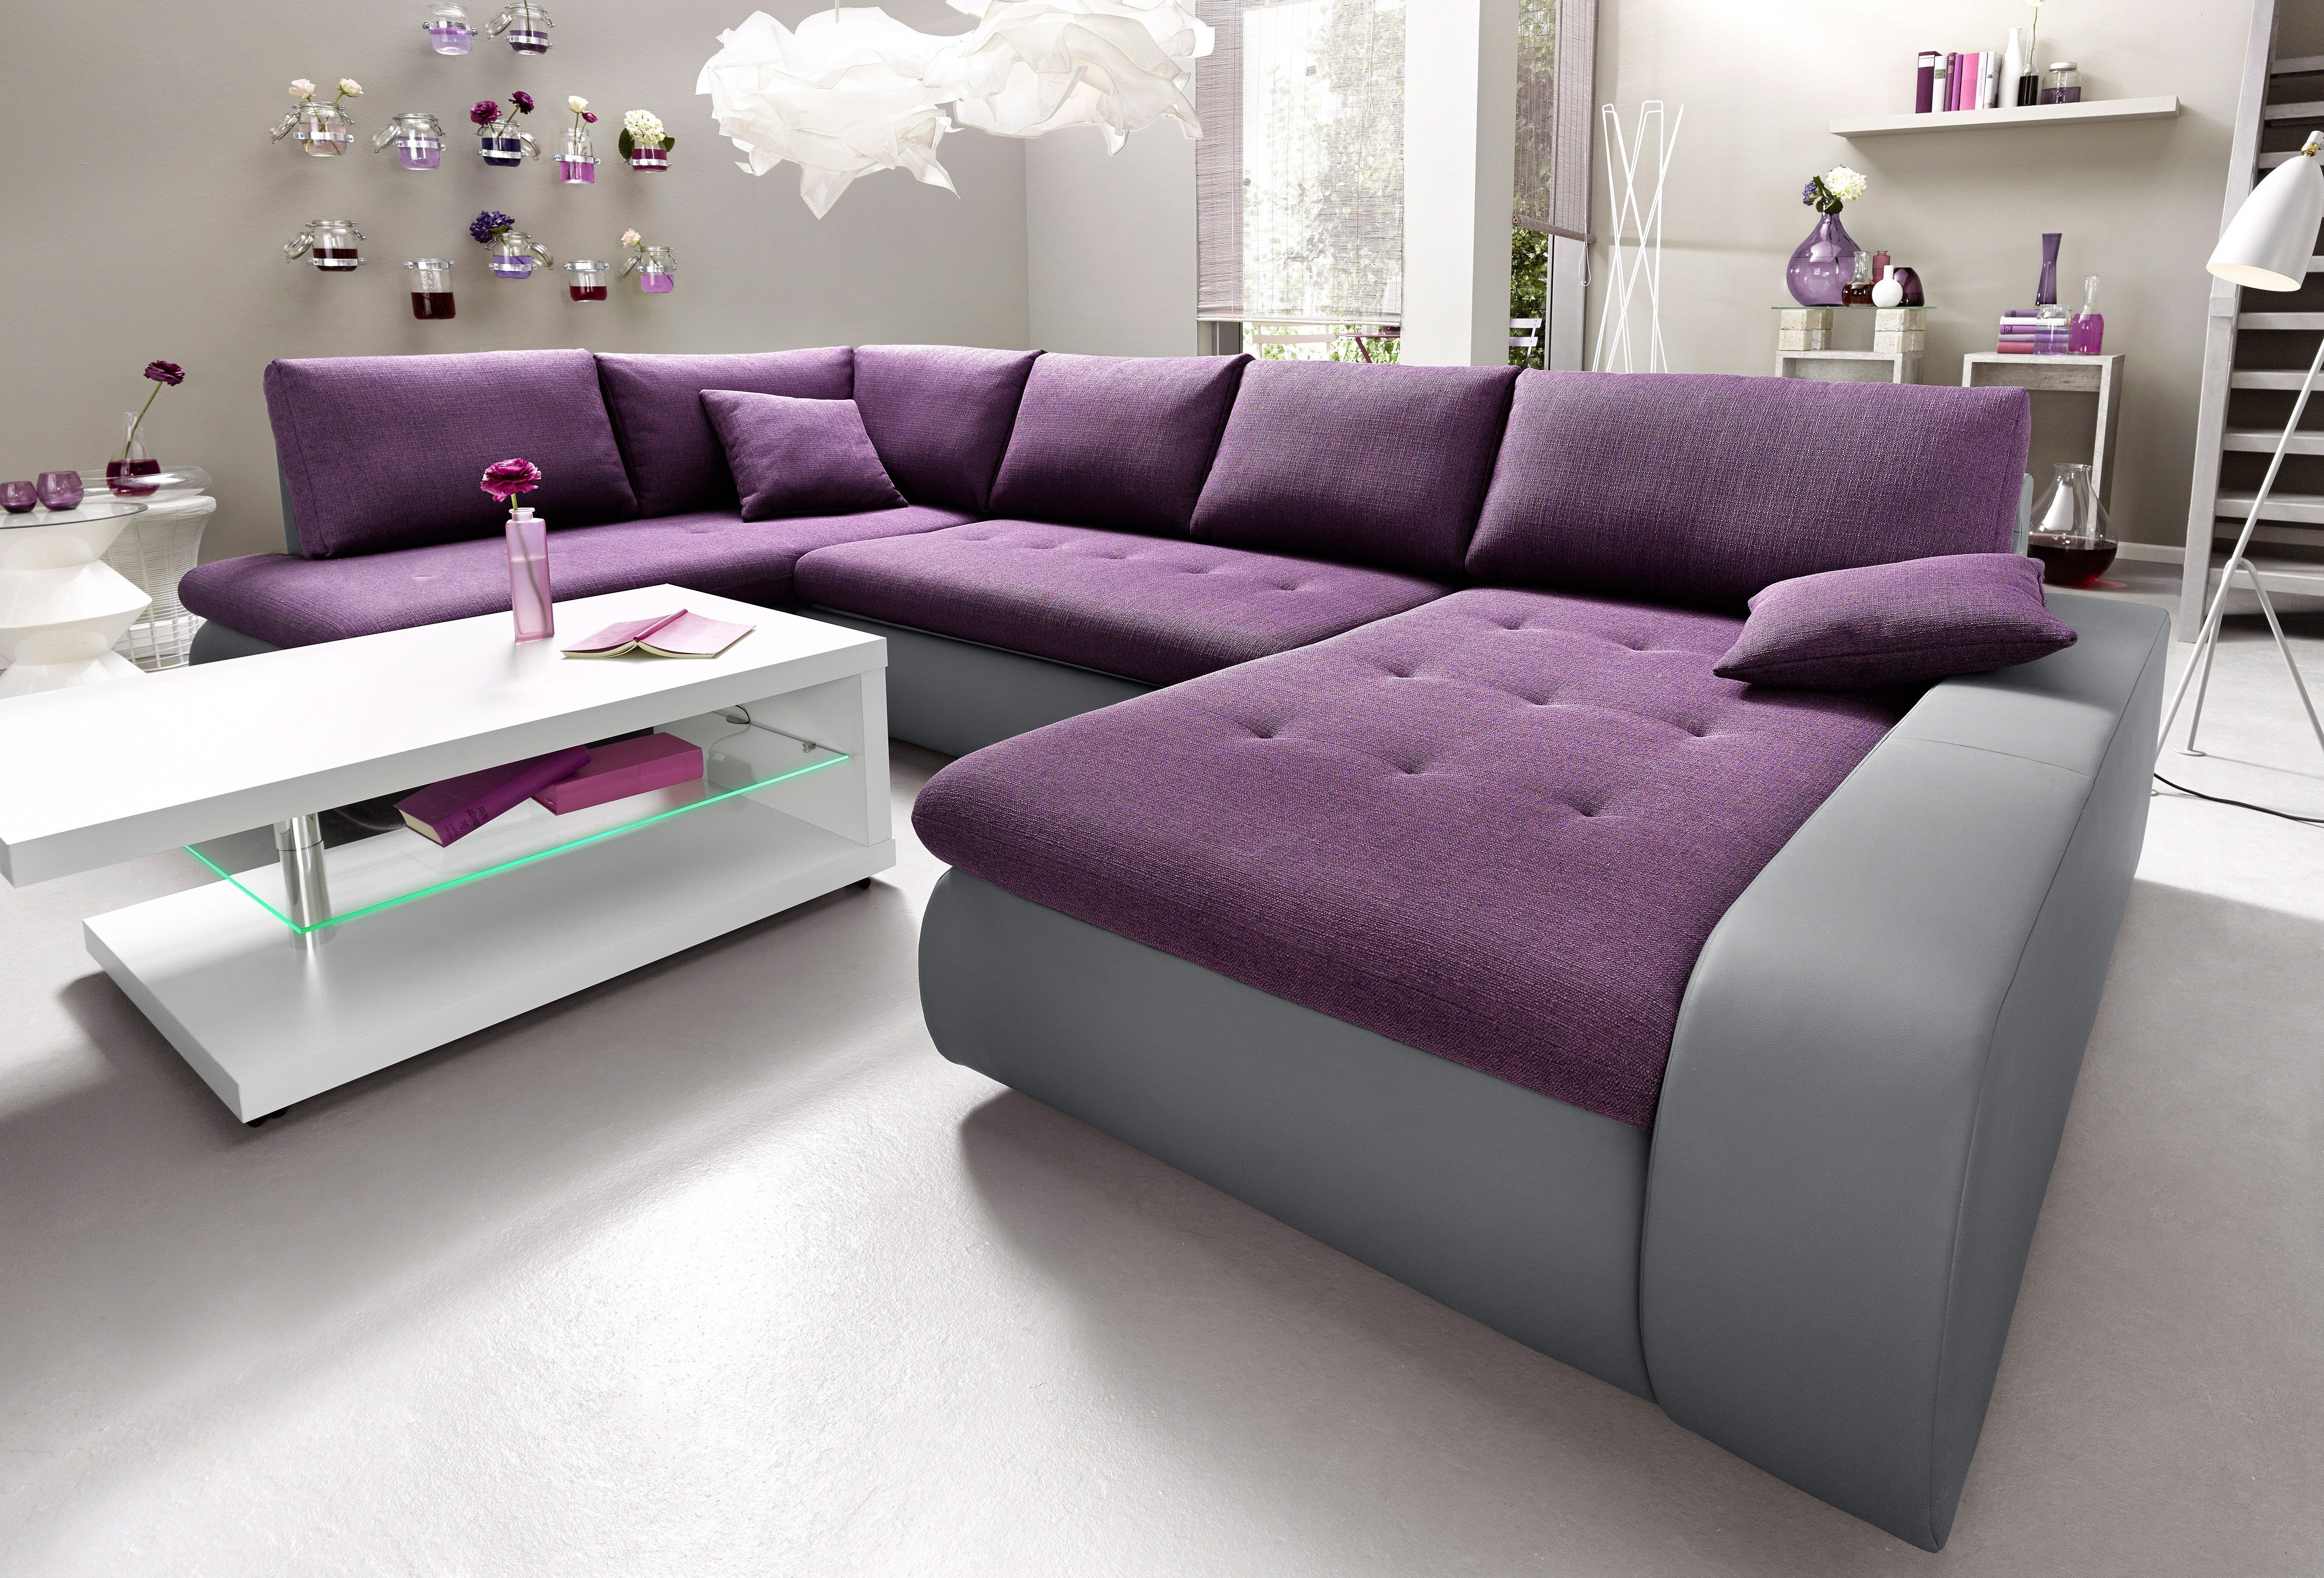 Big-sofa, Energieeffizienz: A Pin By Ladendirekt On Sofas Couches Sofa Couch